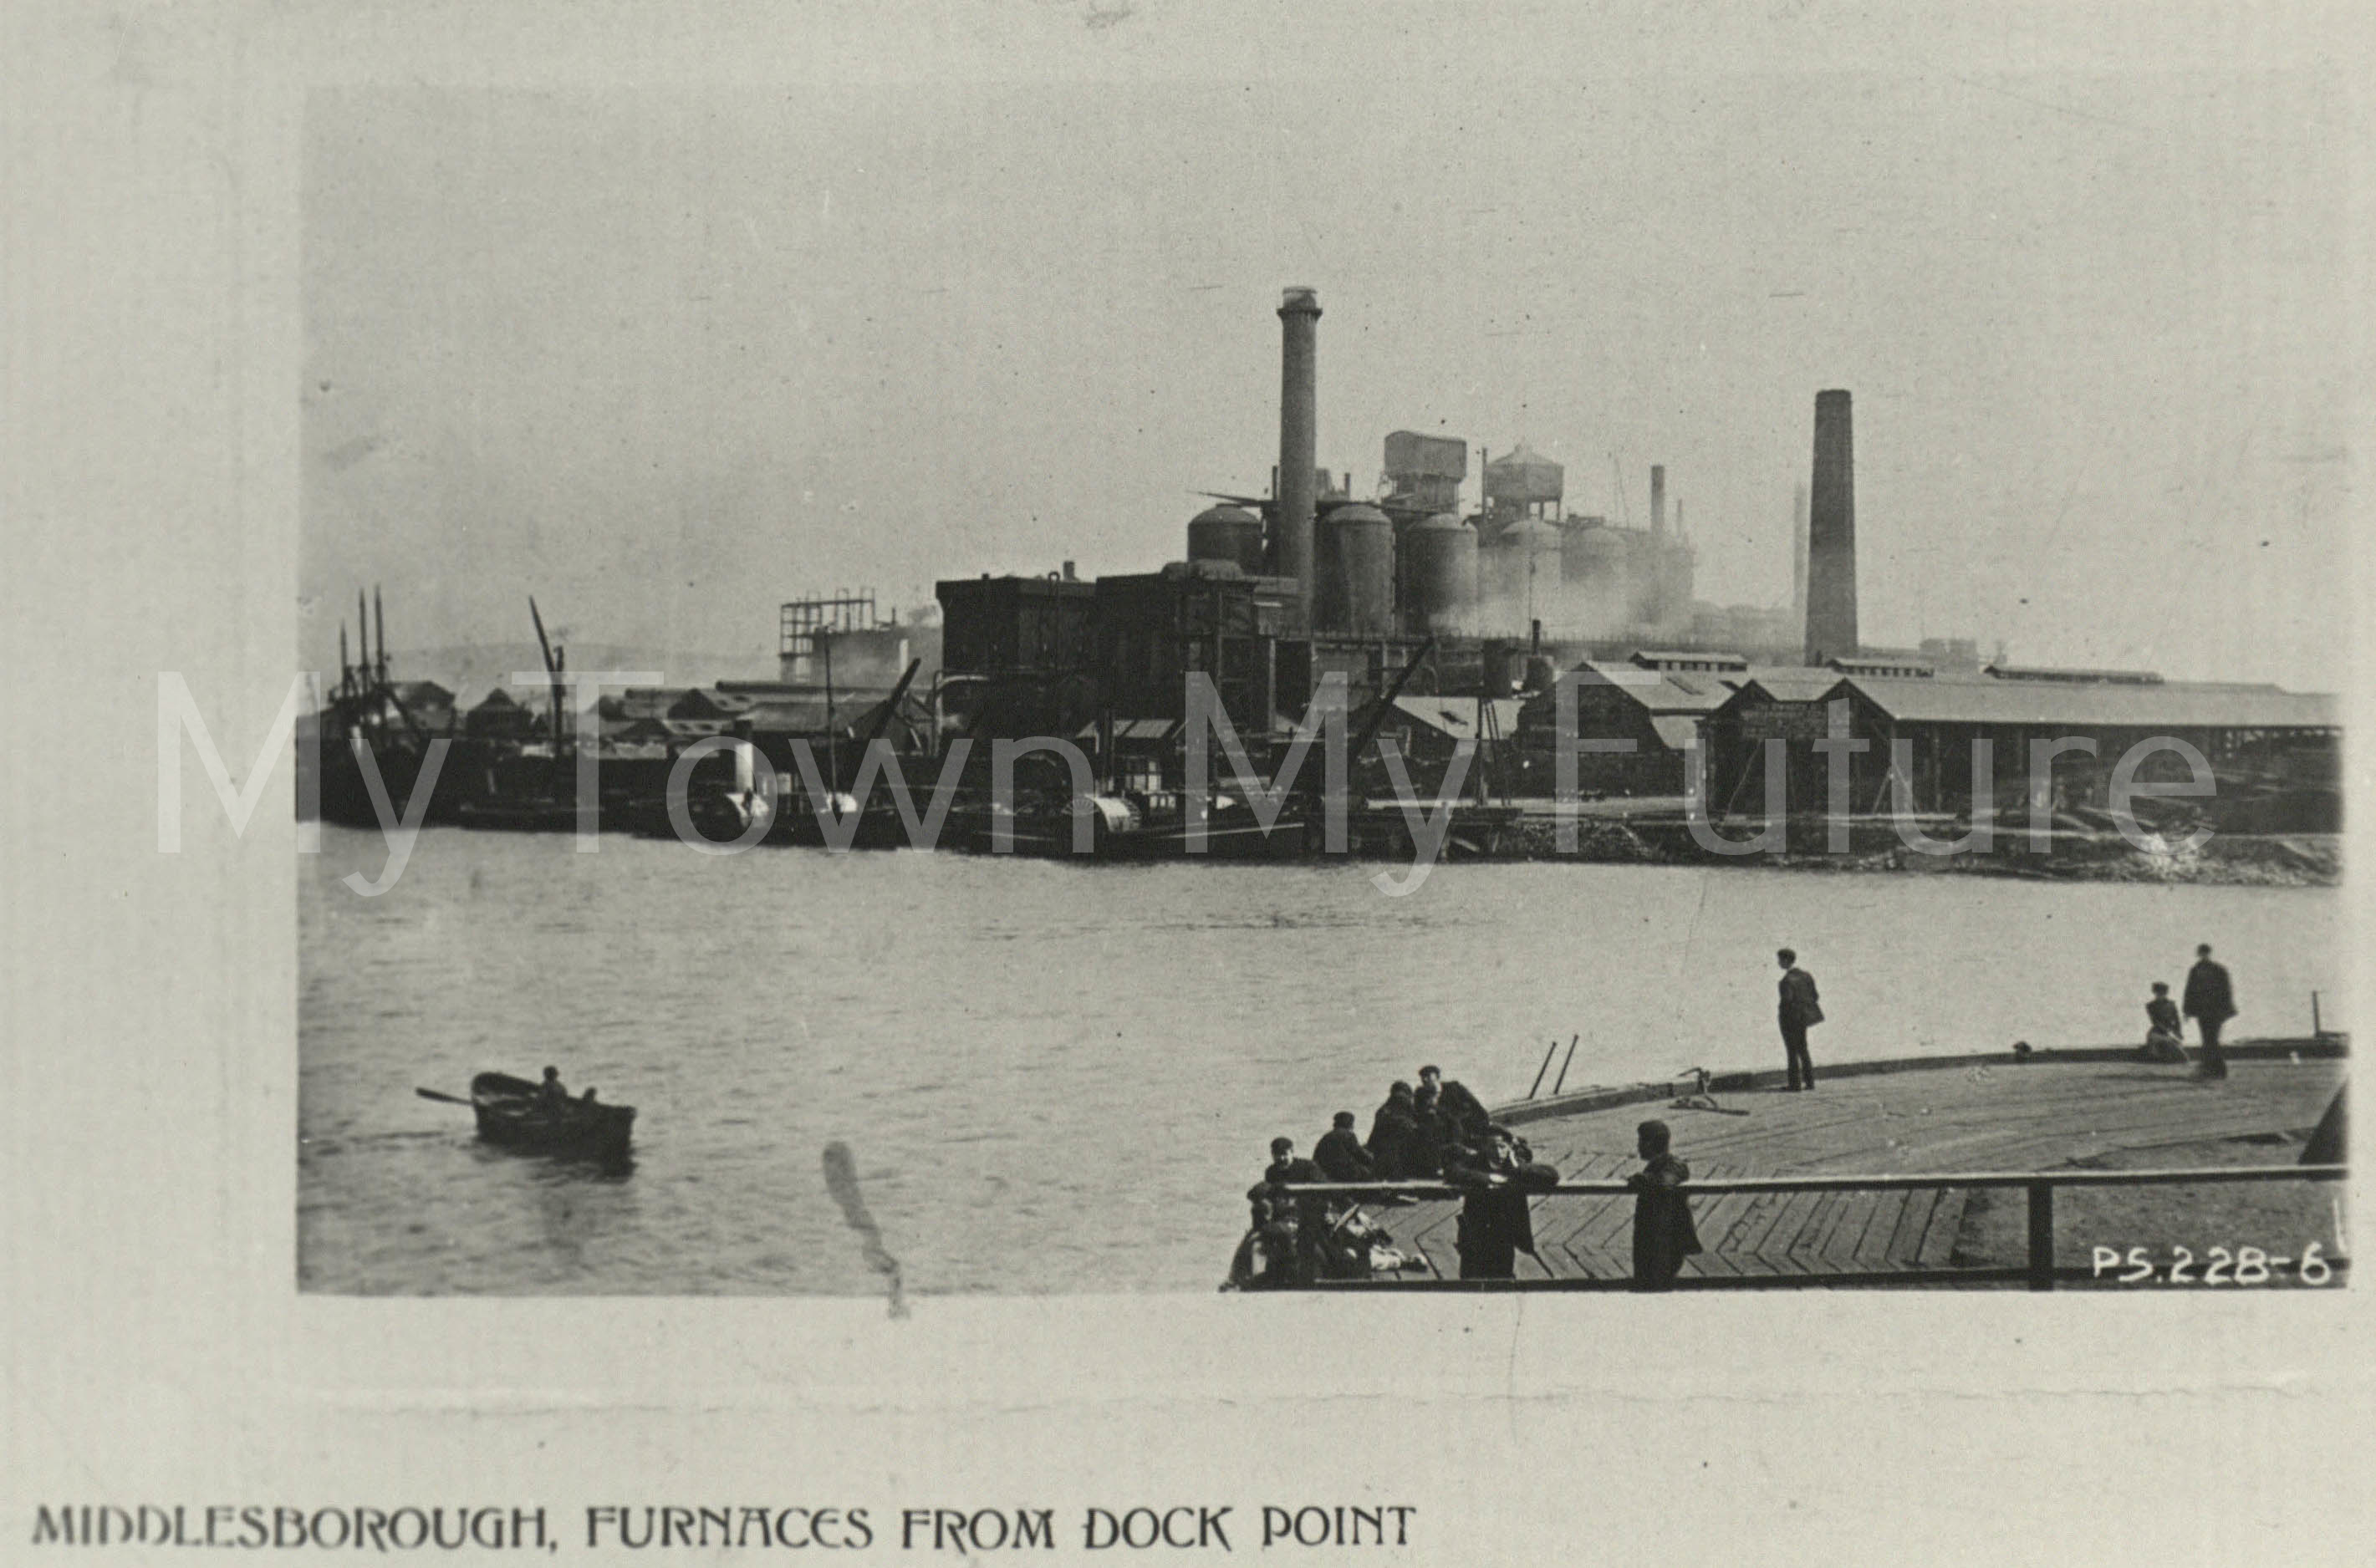 Furnaces from Dock Point